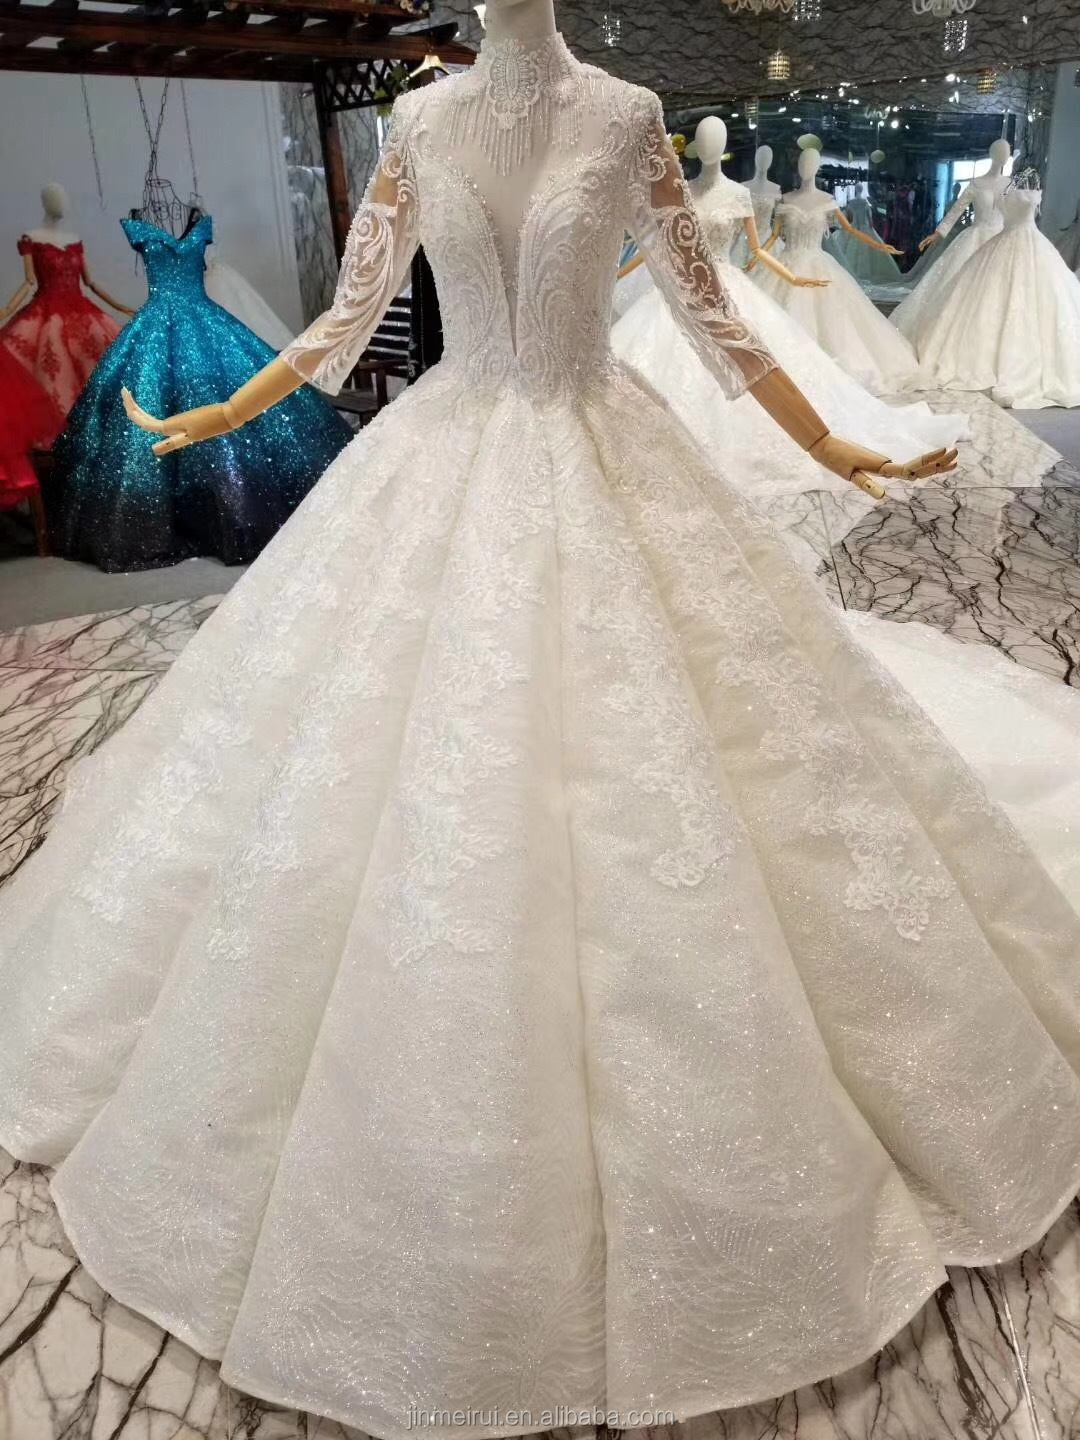 Deep V Neck Sexy Wedding Dresses With Long Sleeves Puffy Folds Ball Gown Bride Dress